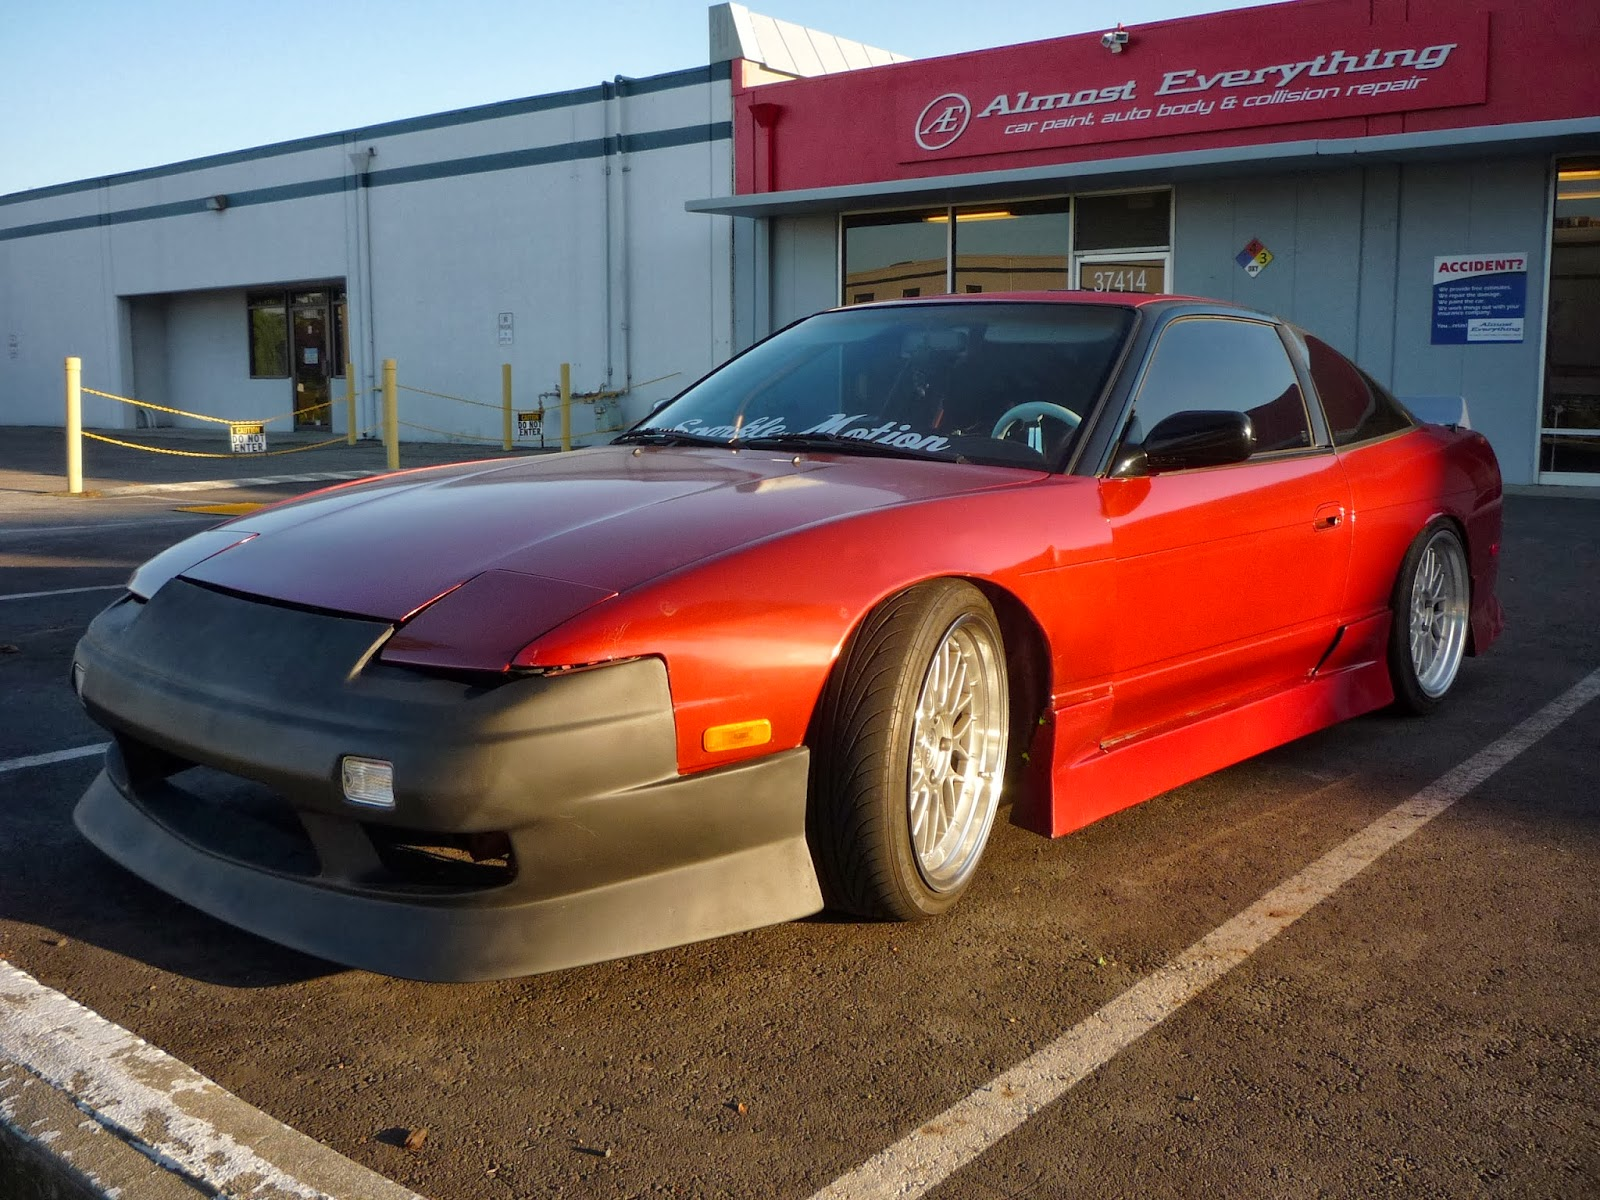 medium resolution of 1991 nissan 240sx with paint from almost everything auto body